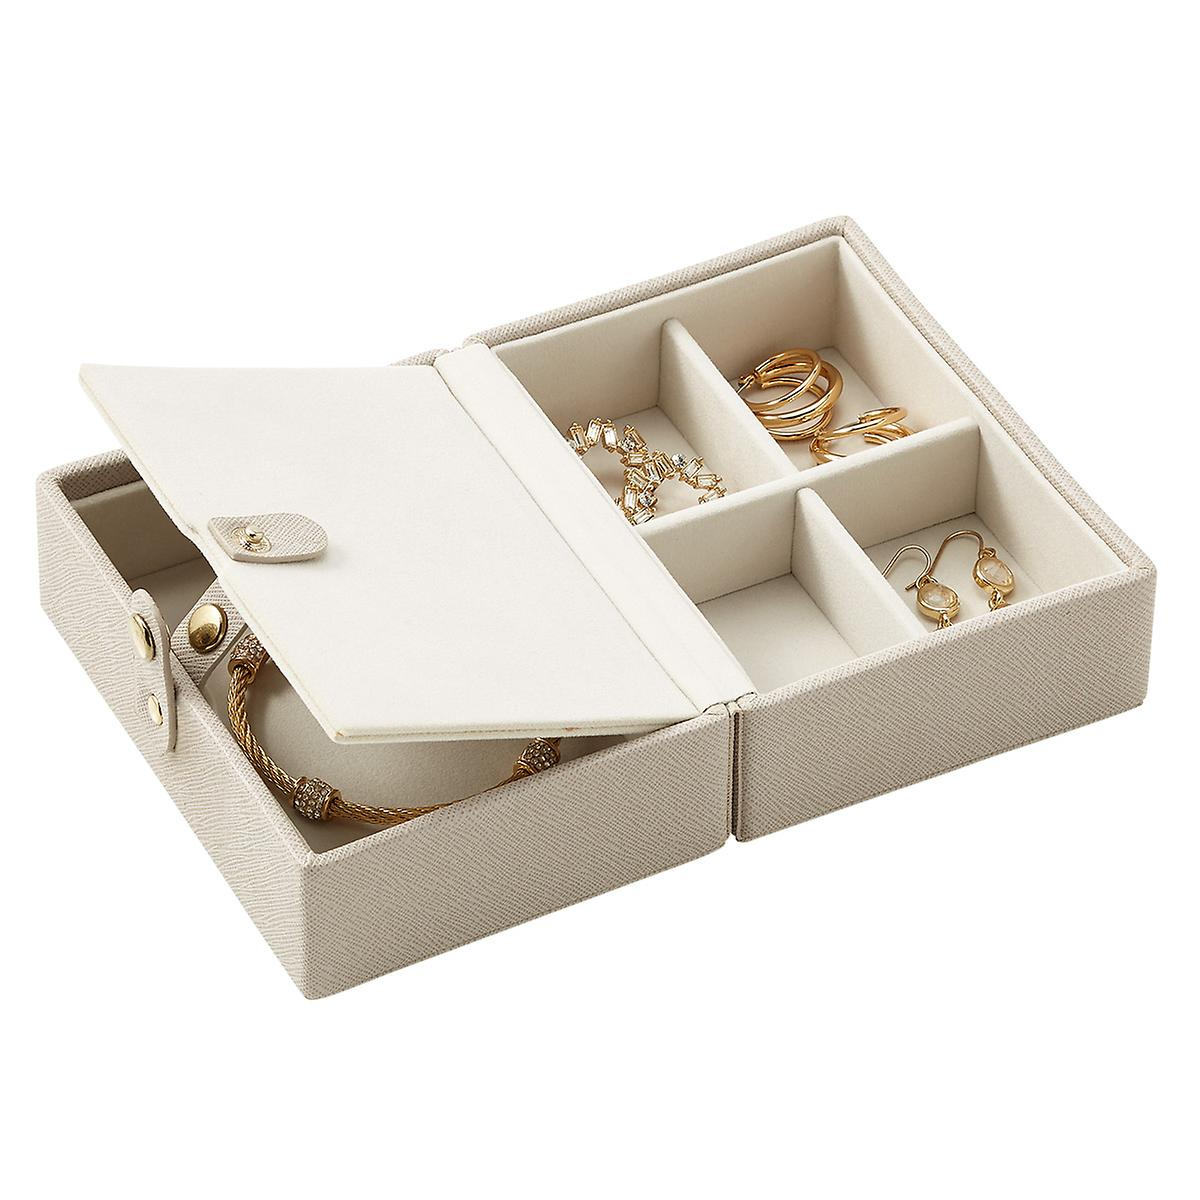 Stackers Taupe Folding Travel Jewelry Storage Tray